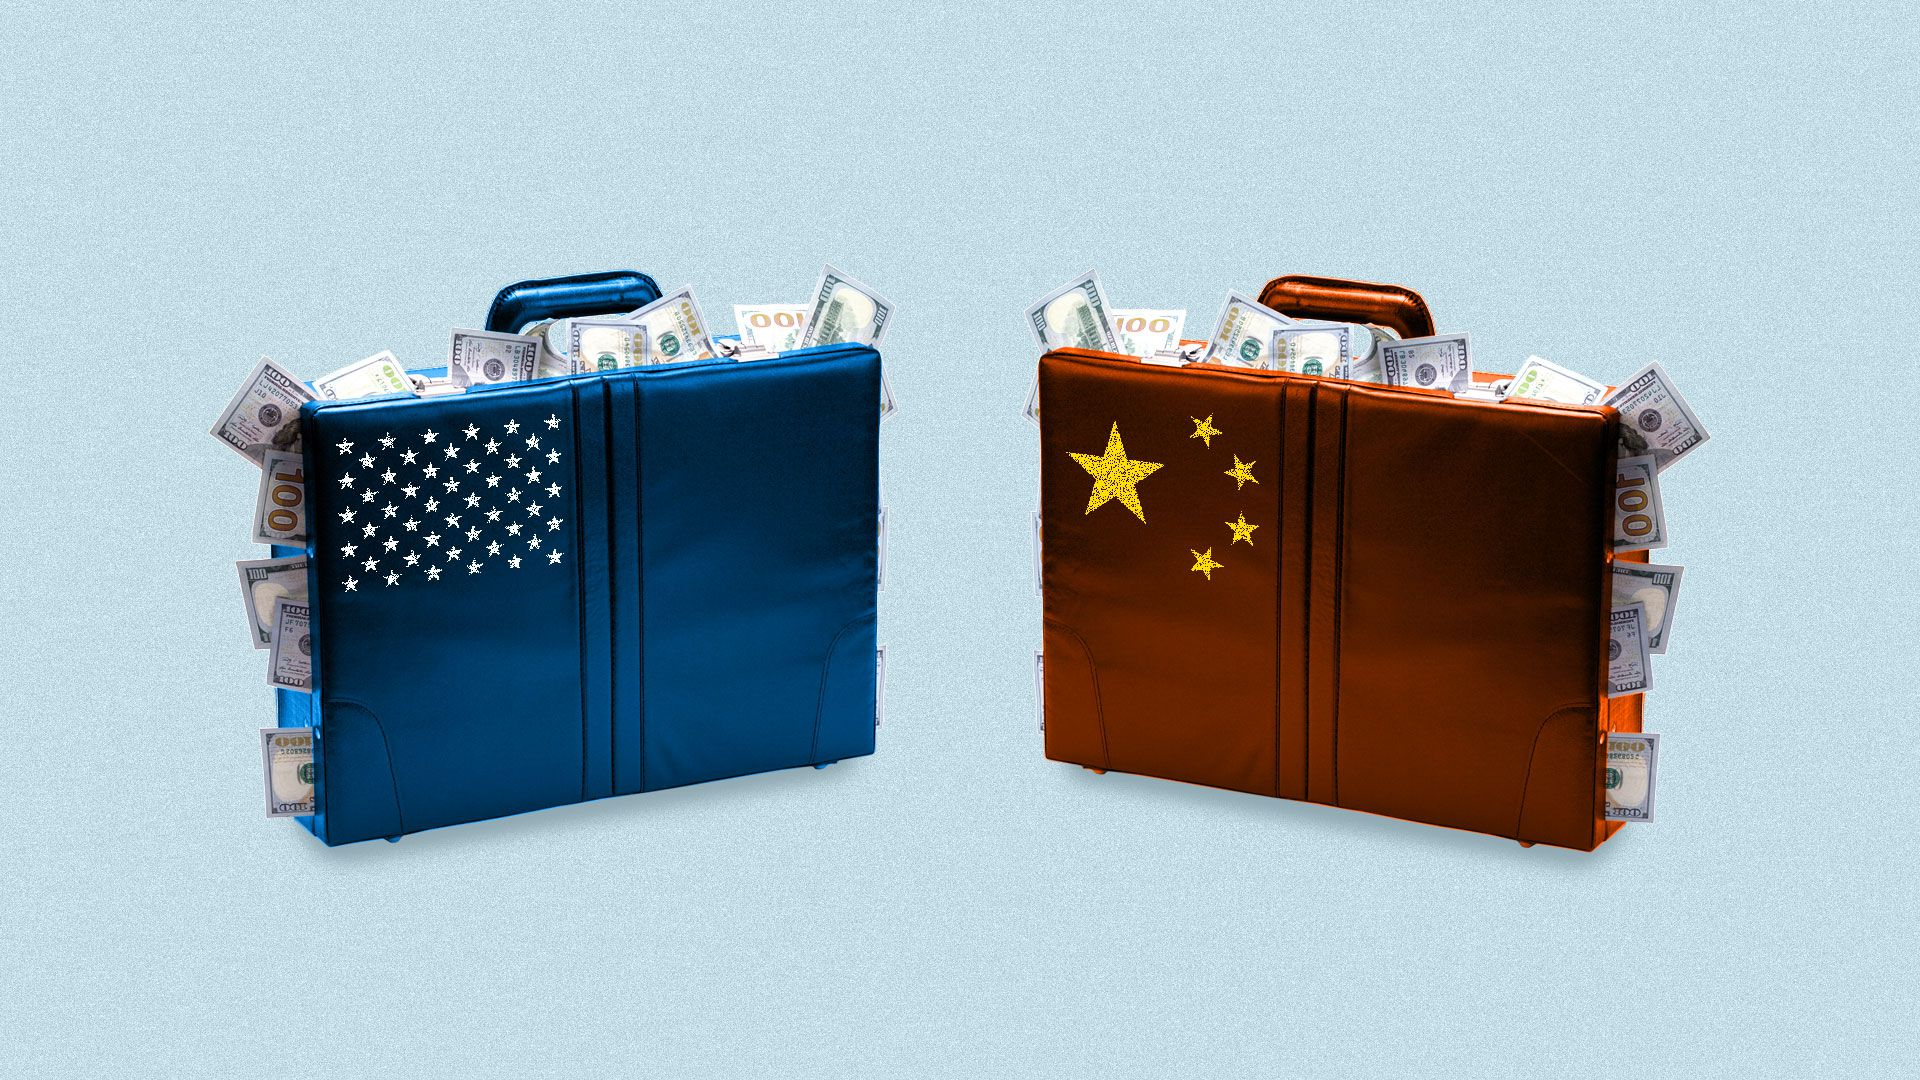 Illustration of 2 briefcases, one red and one blue, stuff full of bills